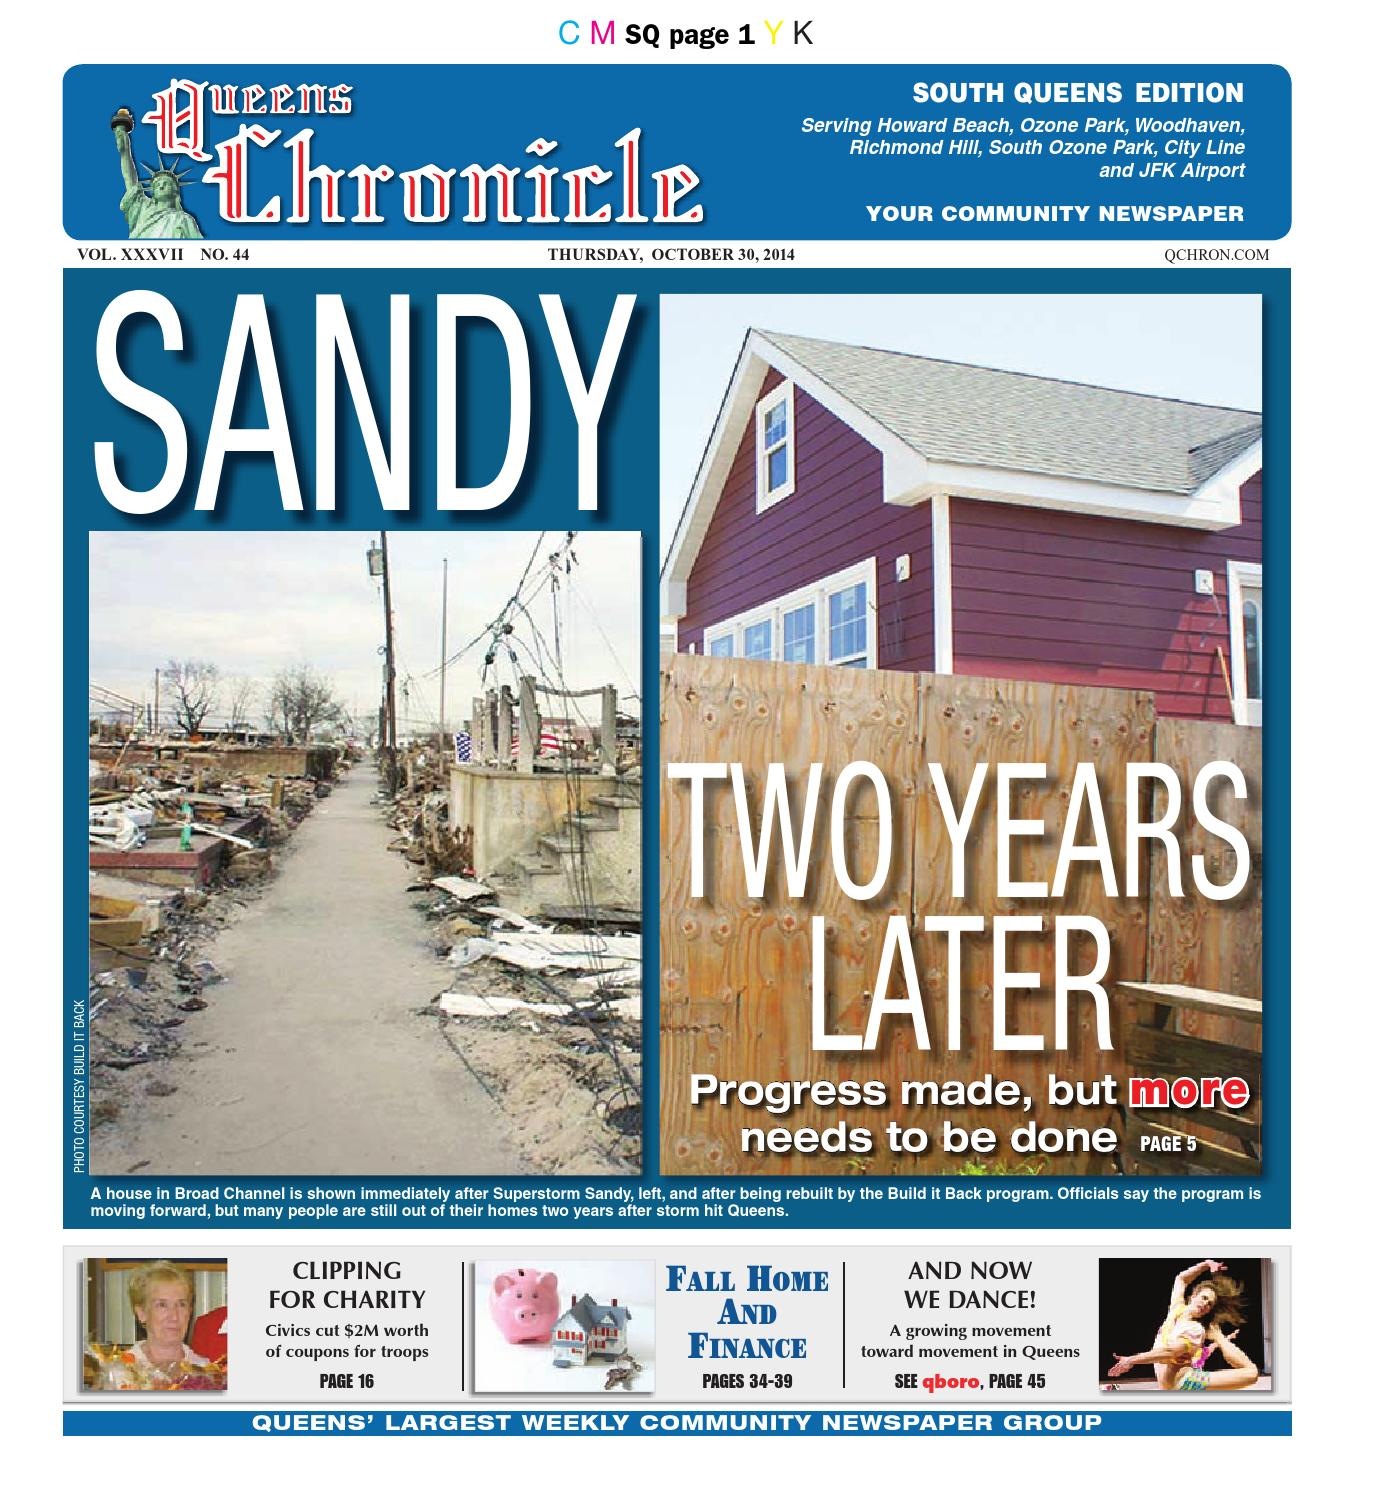 Queens Chronicle South Edition By Queens Chronicle Issuu - Invoice statement template free rocco's online store